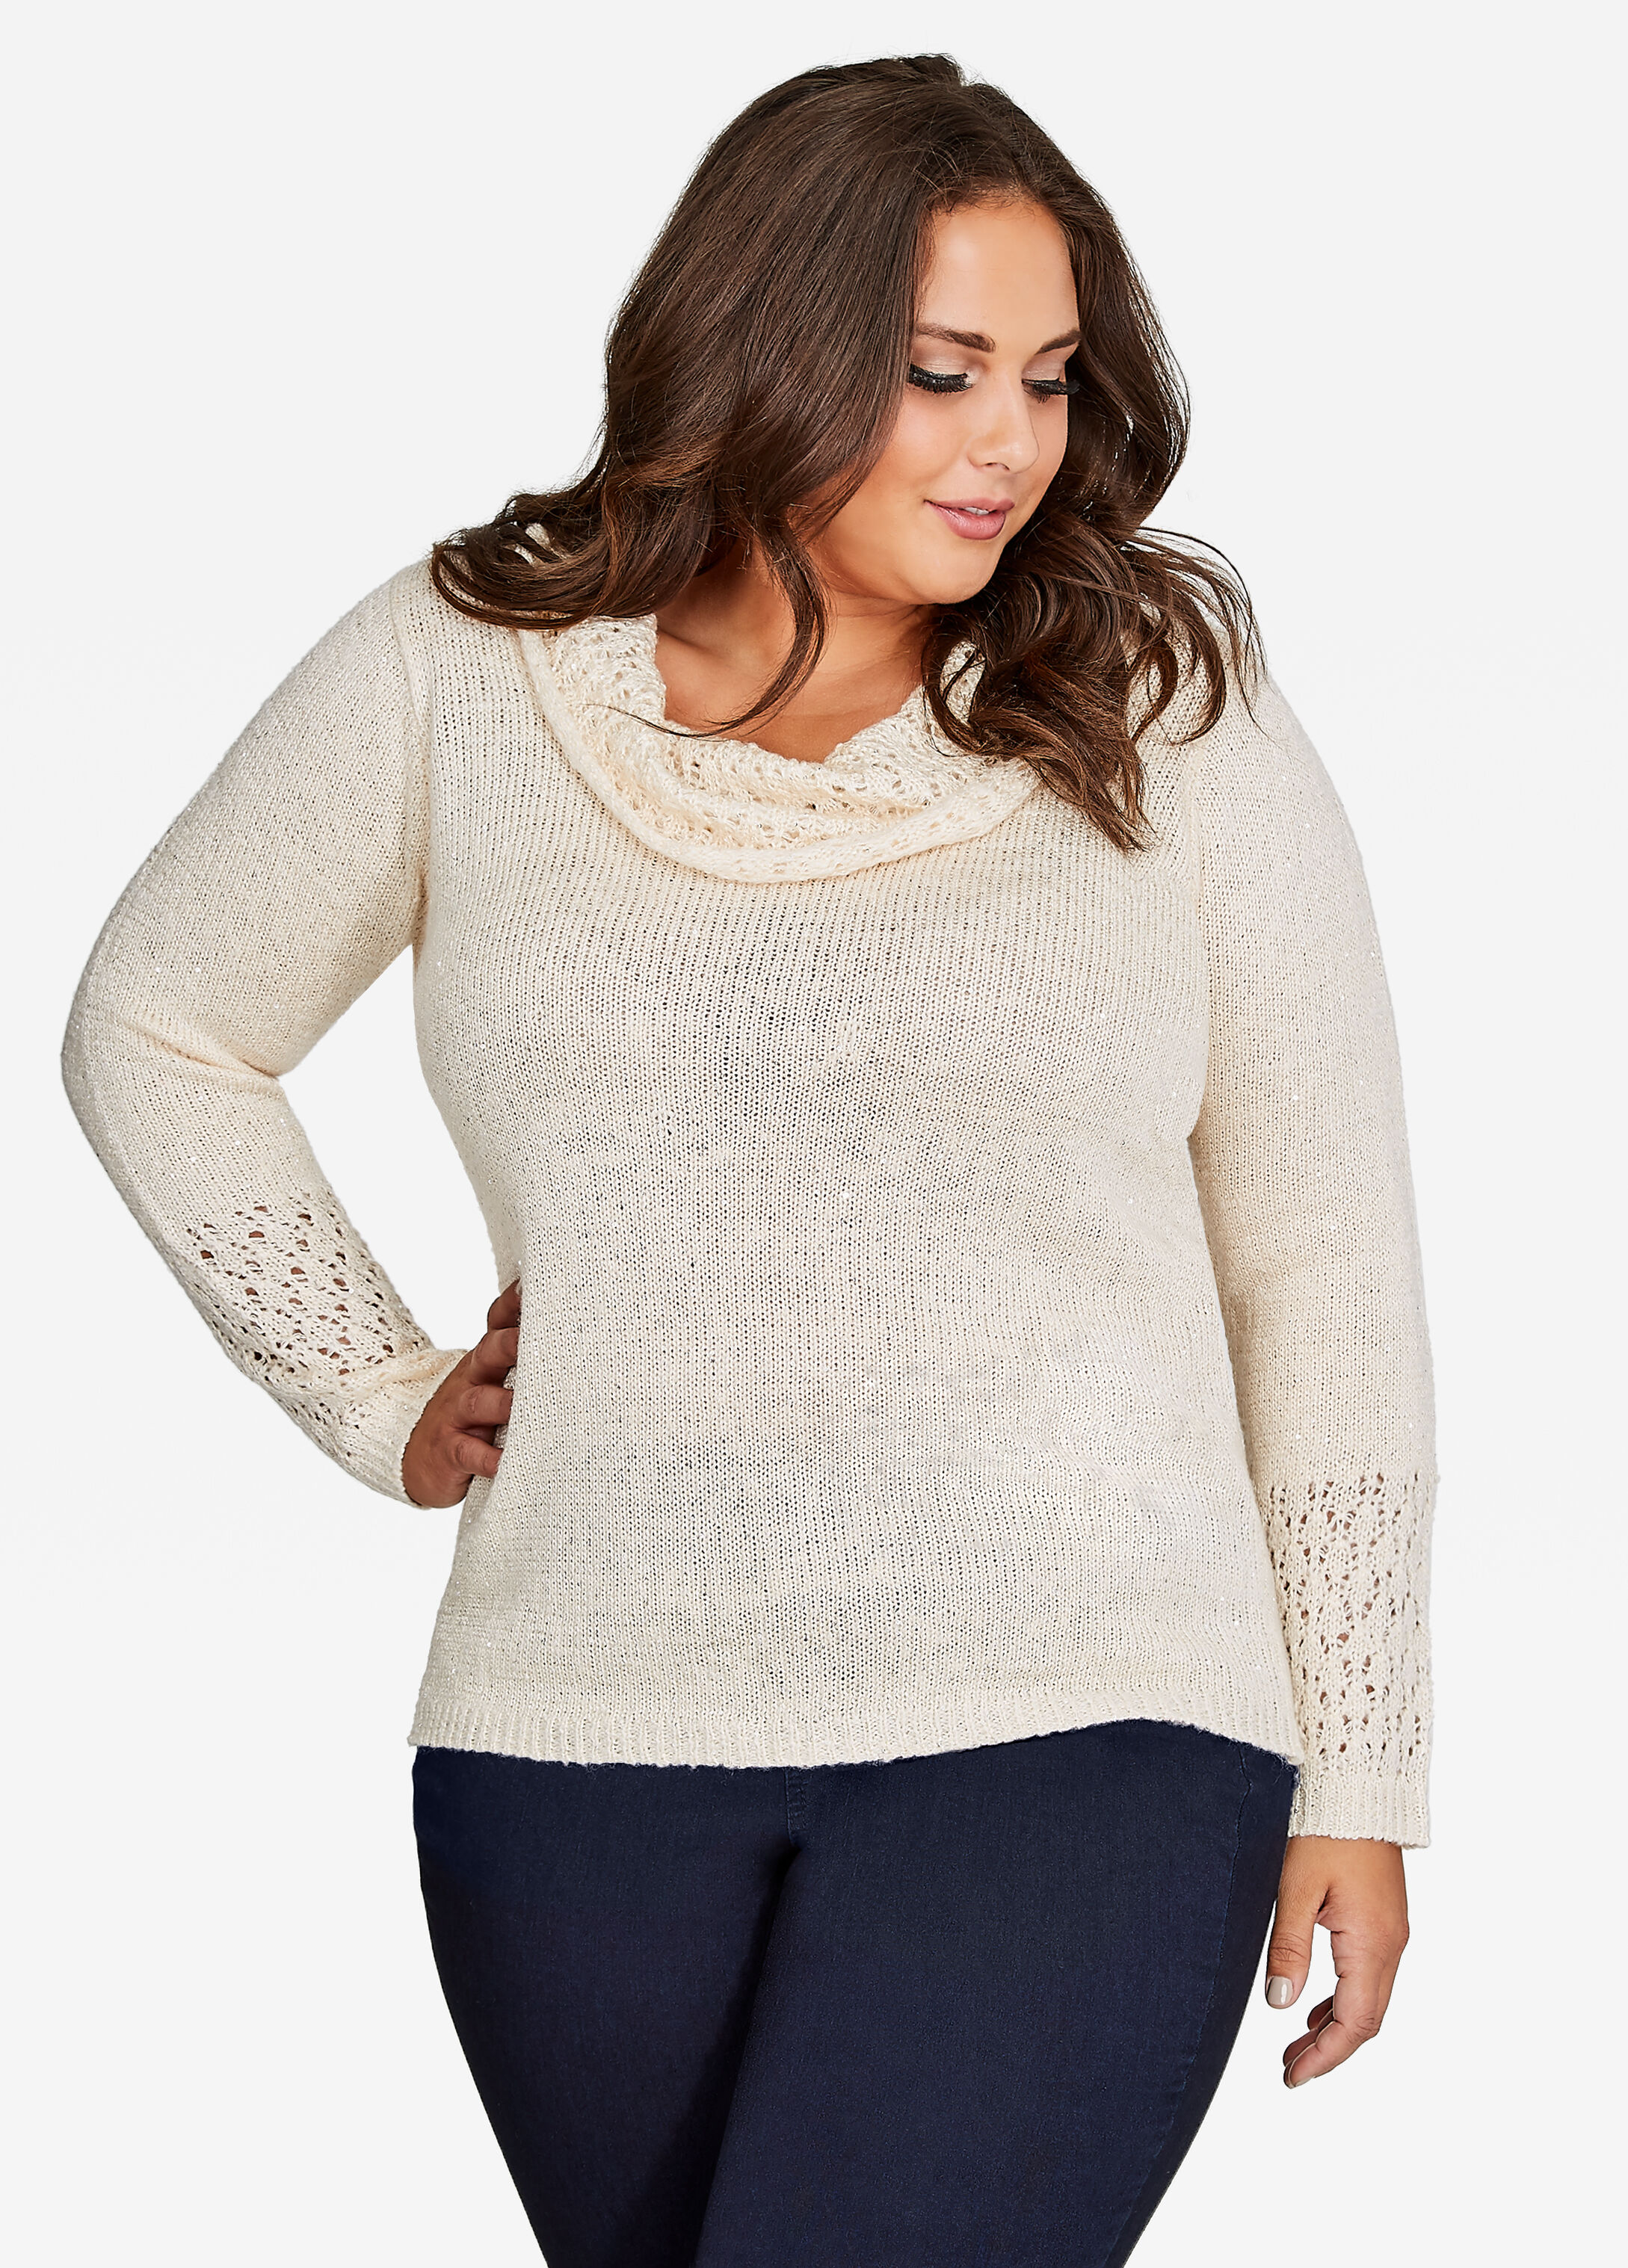 Clearance Womens Plus-Size Clothing On Sale